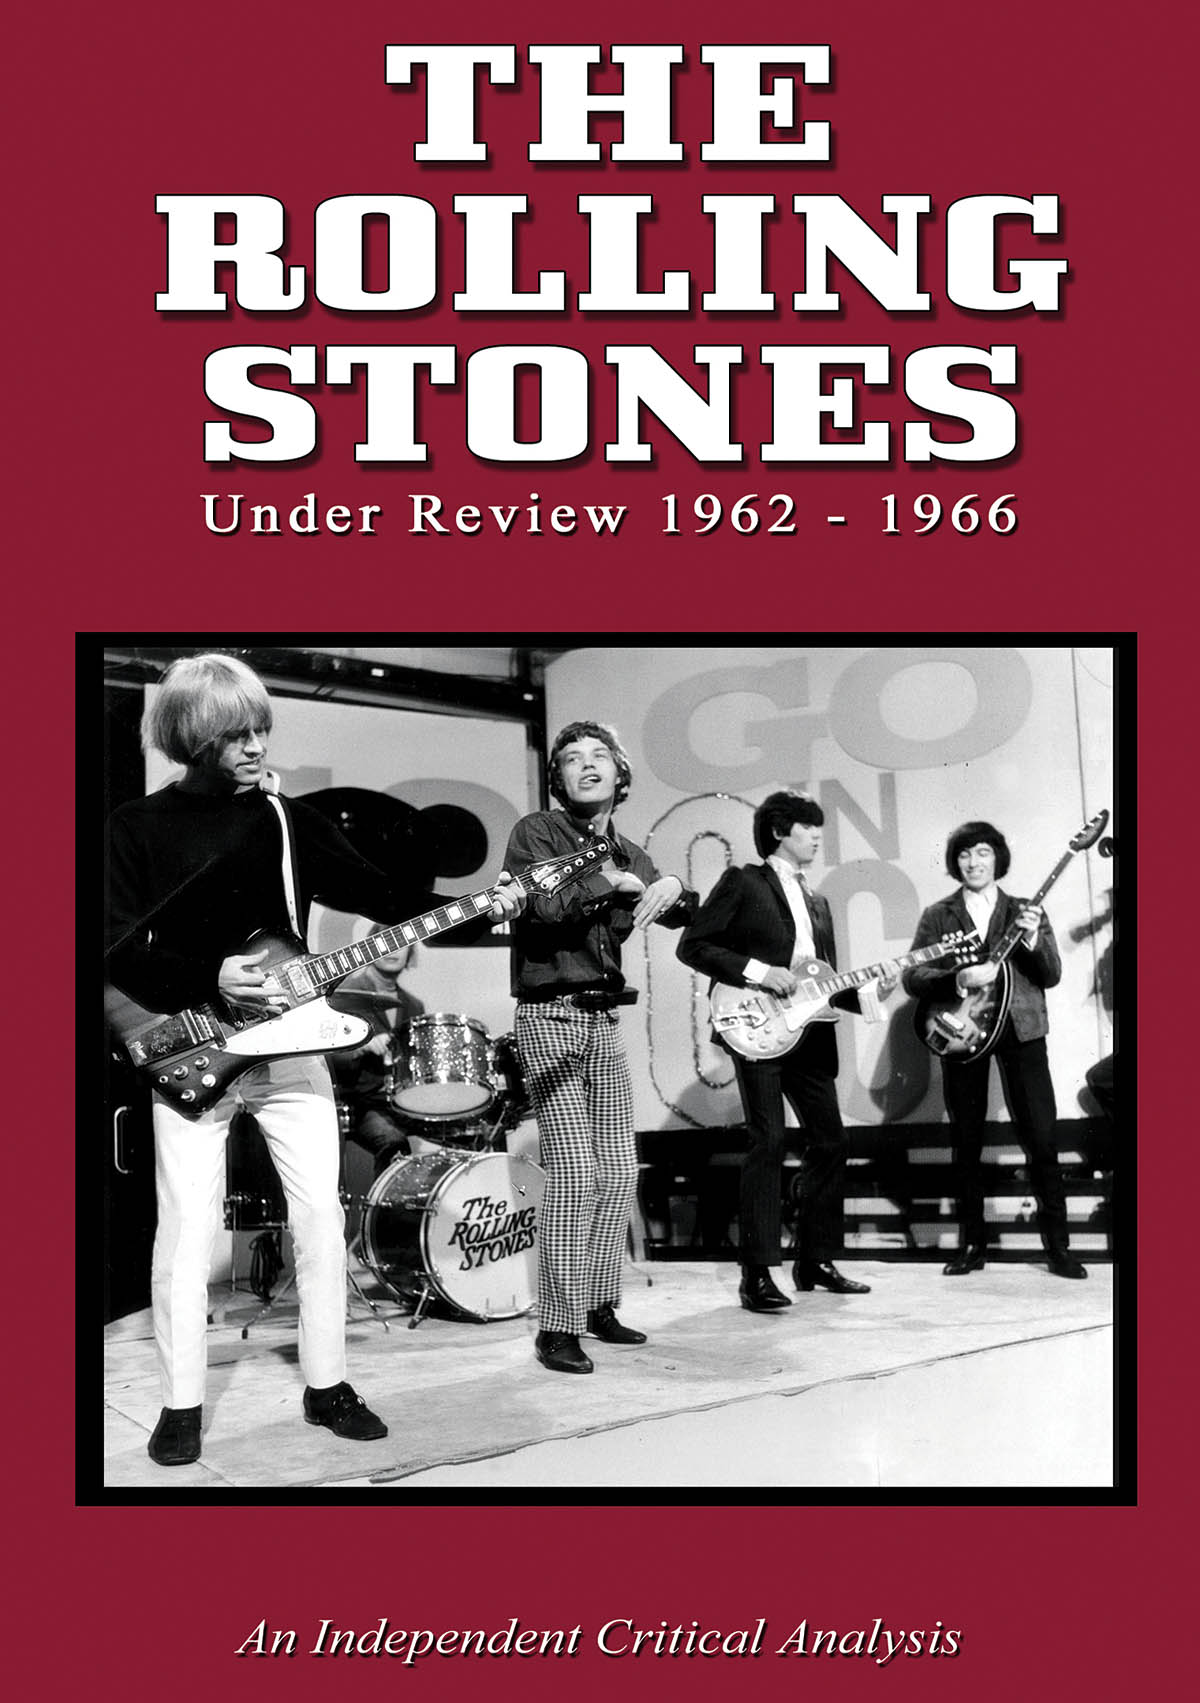 The Rolling Stones: Rolling Stones - Under Review 1962 - 1966: DVD